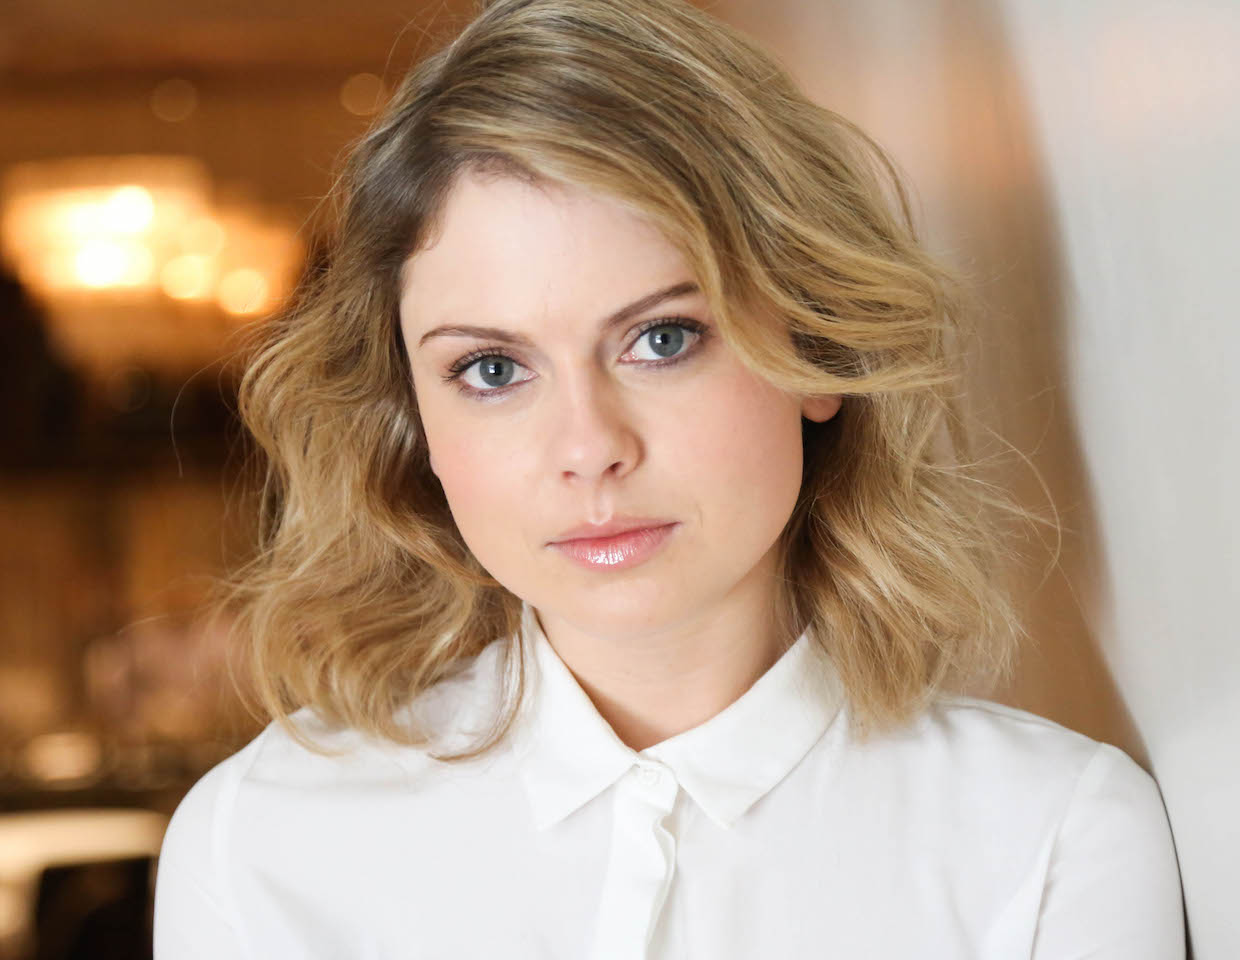 Rose McIver nudes (64 photo) Gallery, Twitter, panties